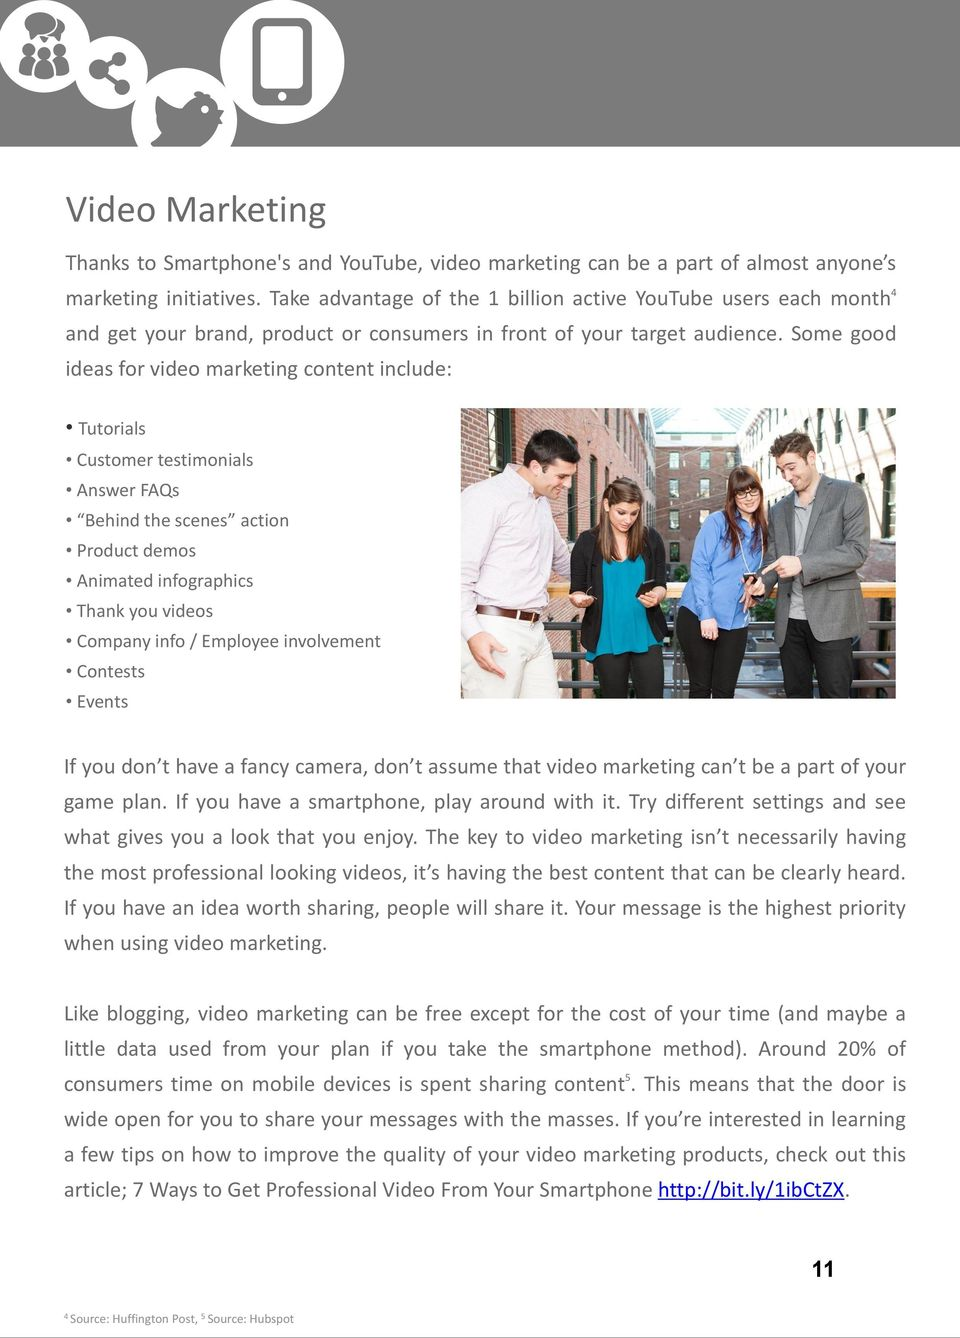 Some good ideas for video marketing content include: Tutorials Customer testimonials Answer FAQs Behind the scenes action Product demos Animated infographics Thank you videos Company info / Employee